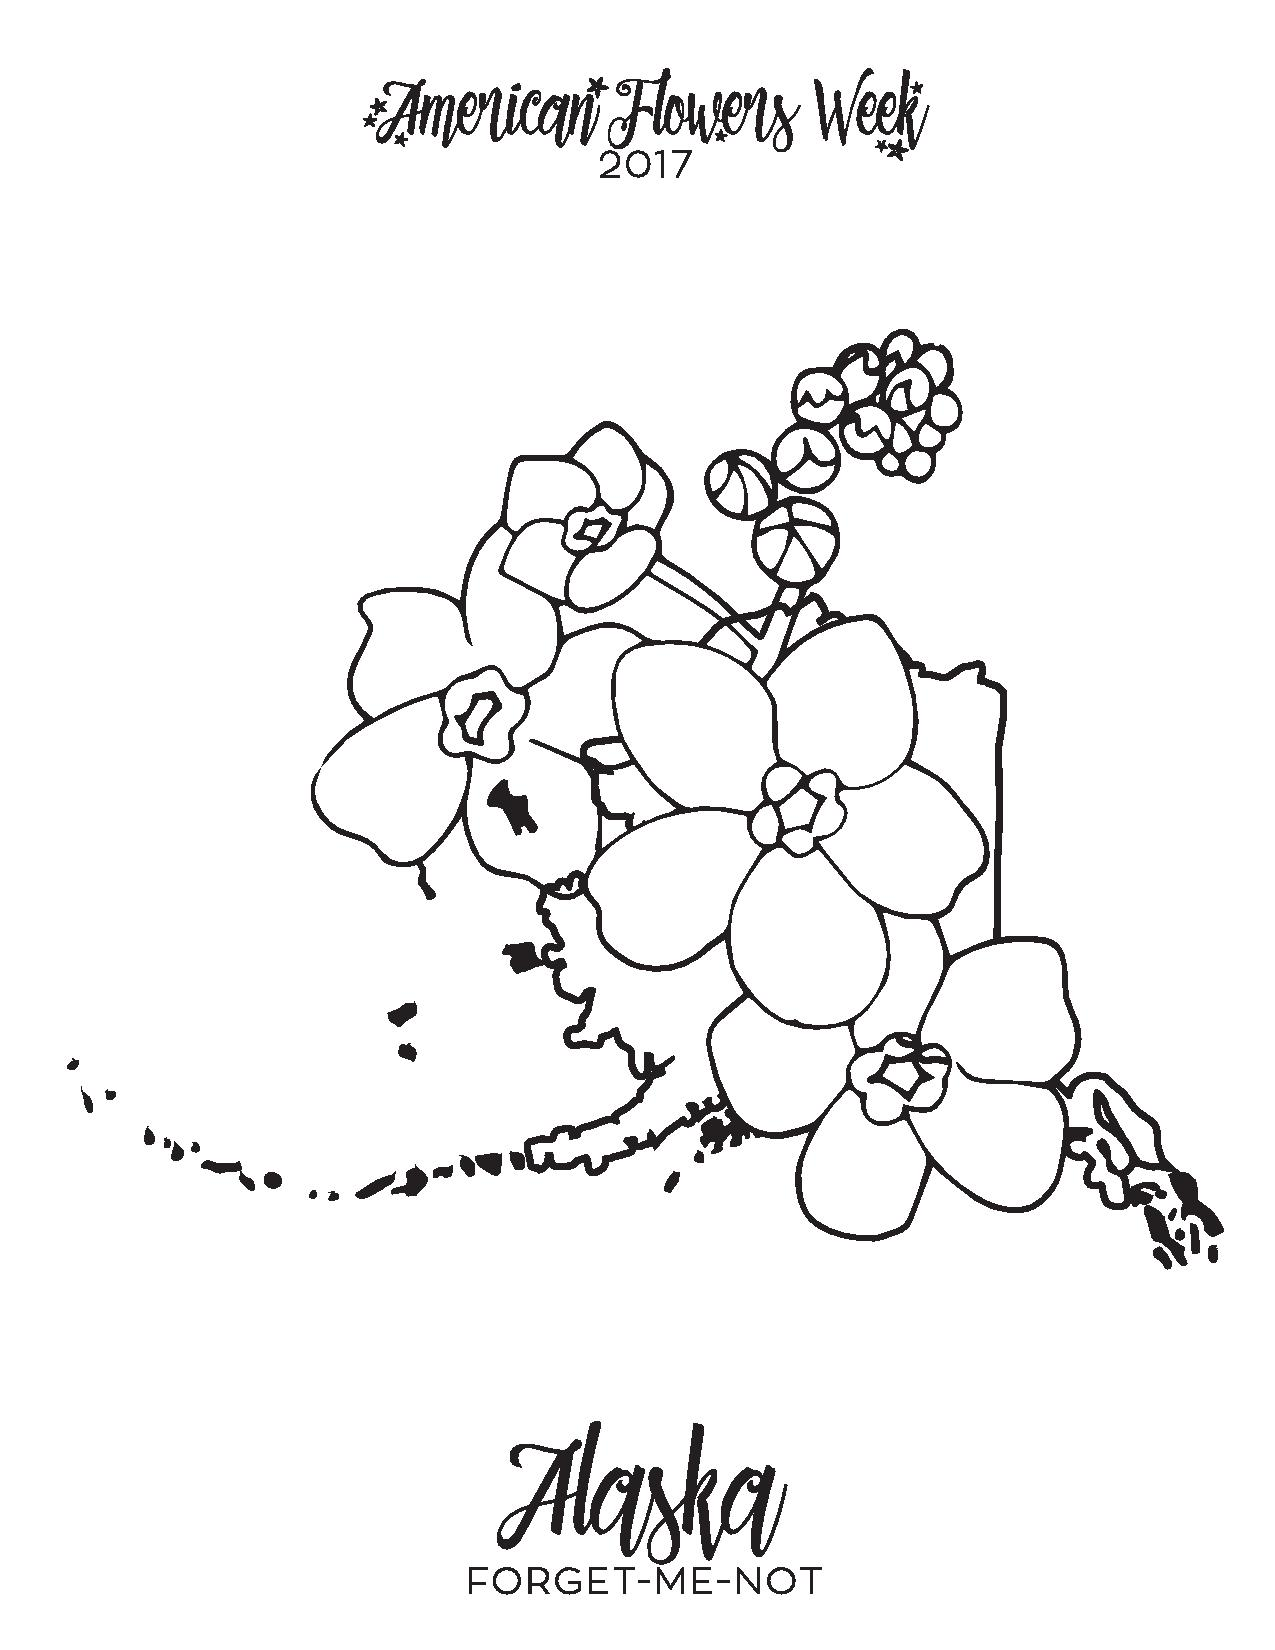 1275x1650 50 State Flowers Free Coloring Pages American Flowers Week